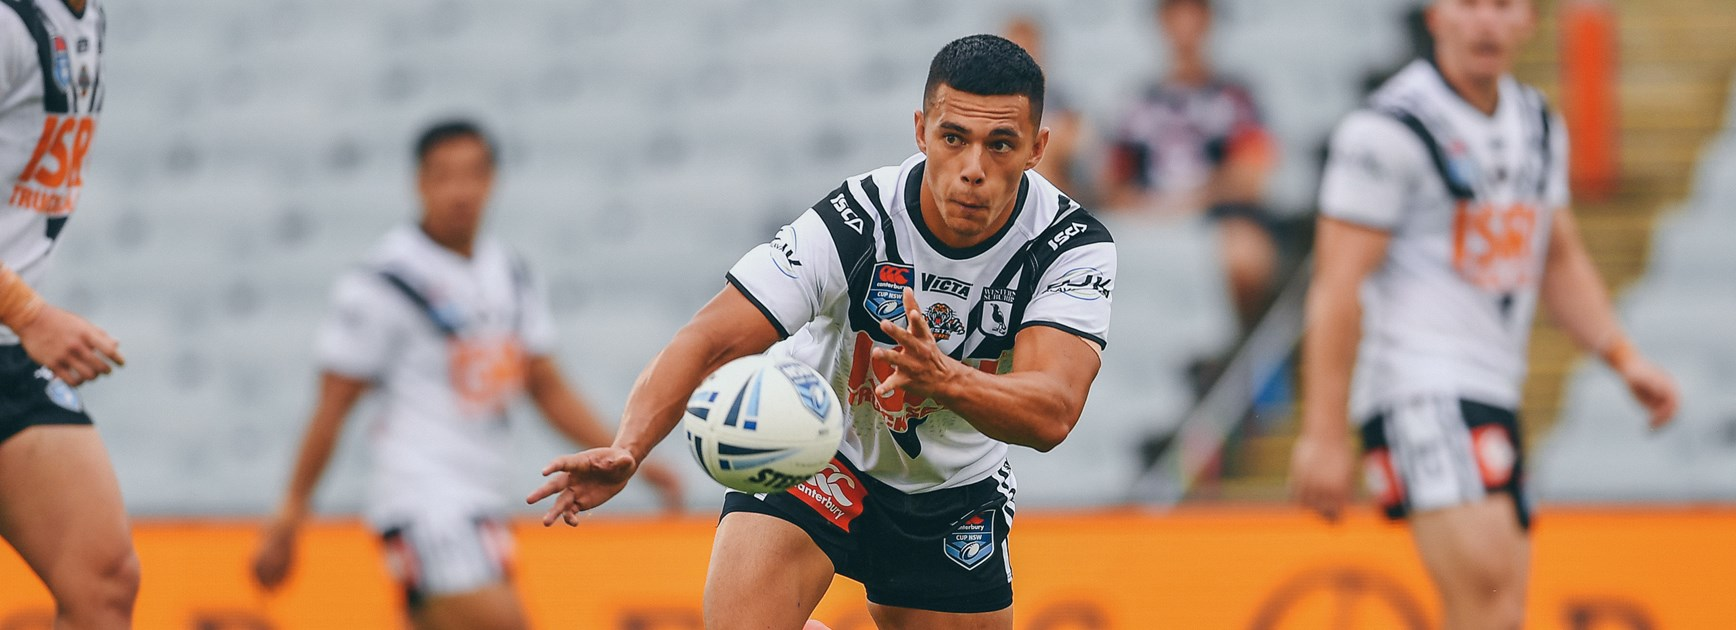 Magpies run down for thrilling draw against Dragons